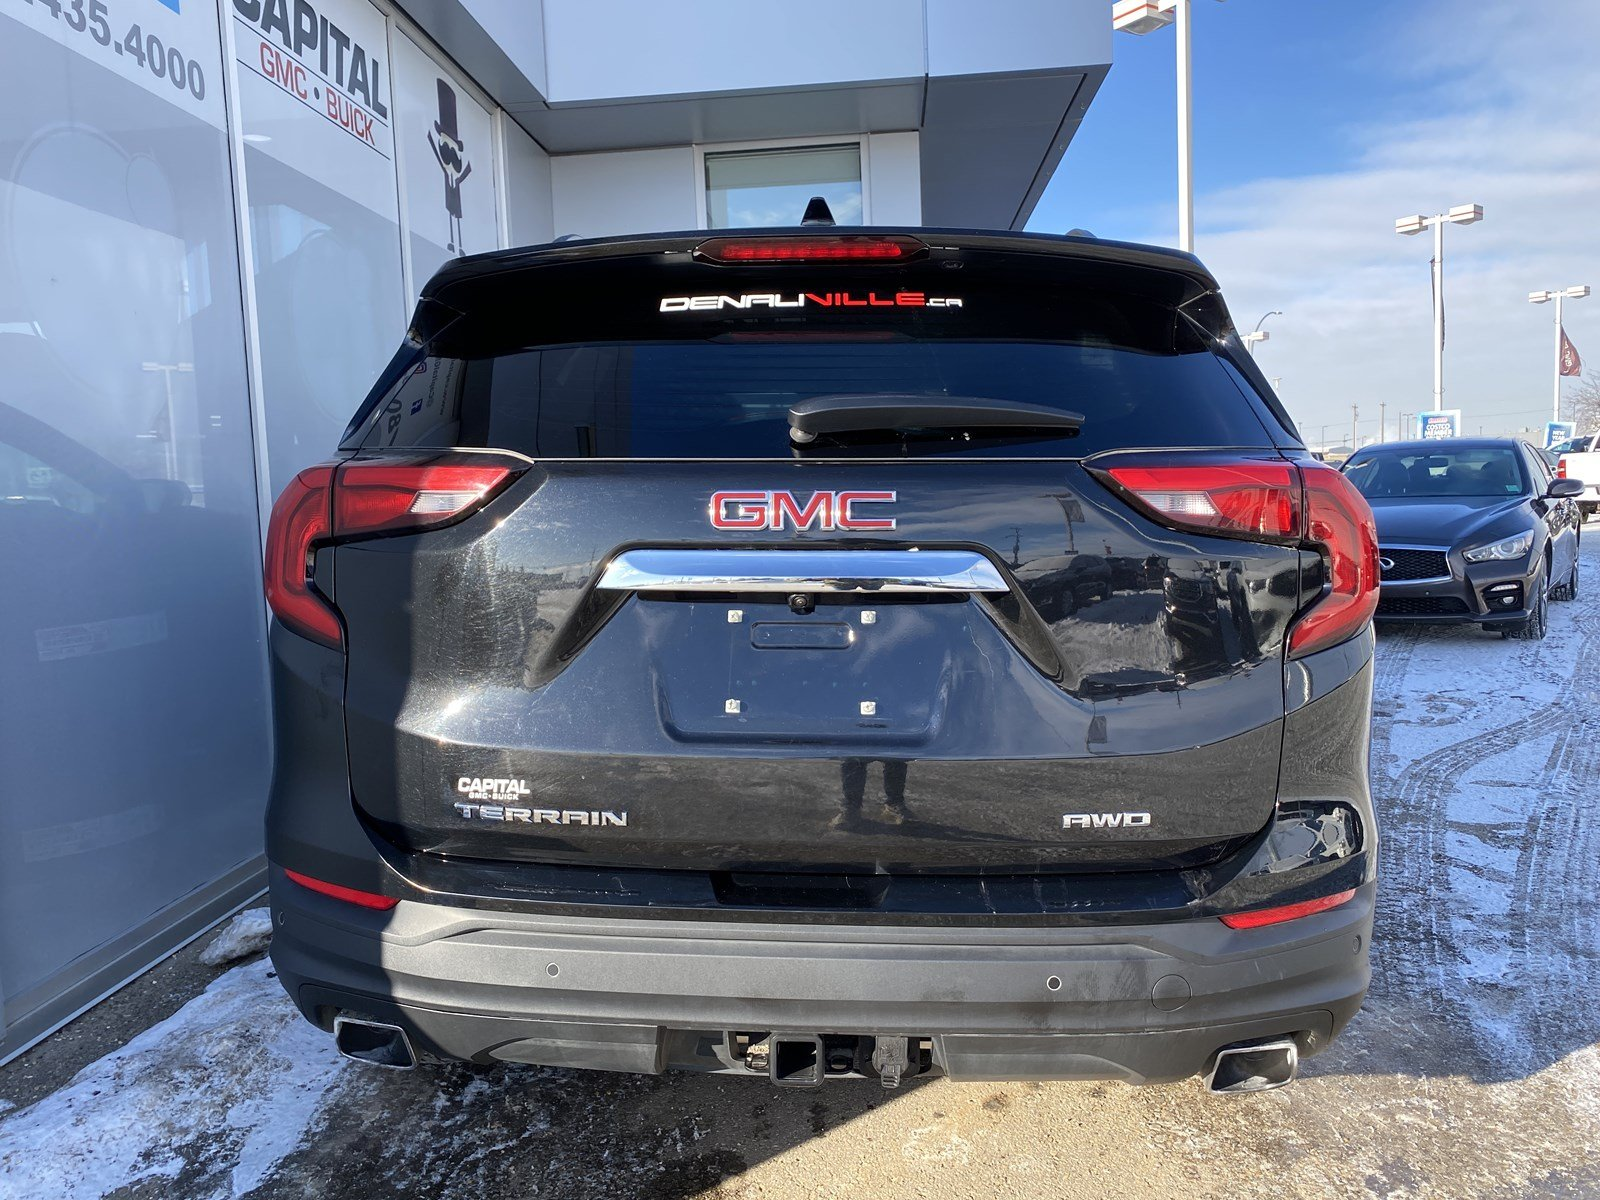 Certified Pre-Owned 2019 GMC Terrain SLE AWD REMOTE START SUNROOF NAV